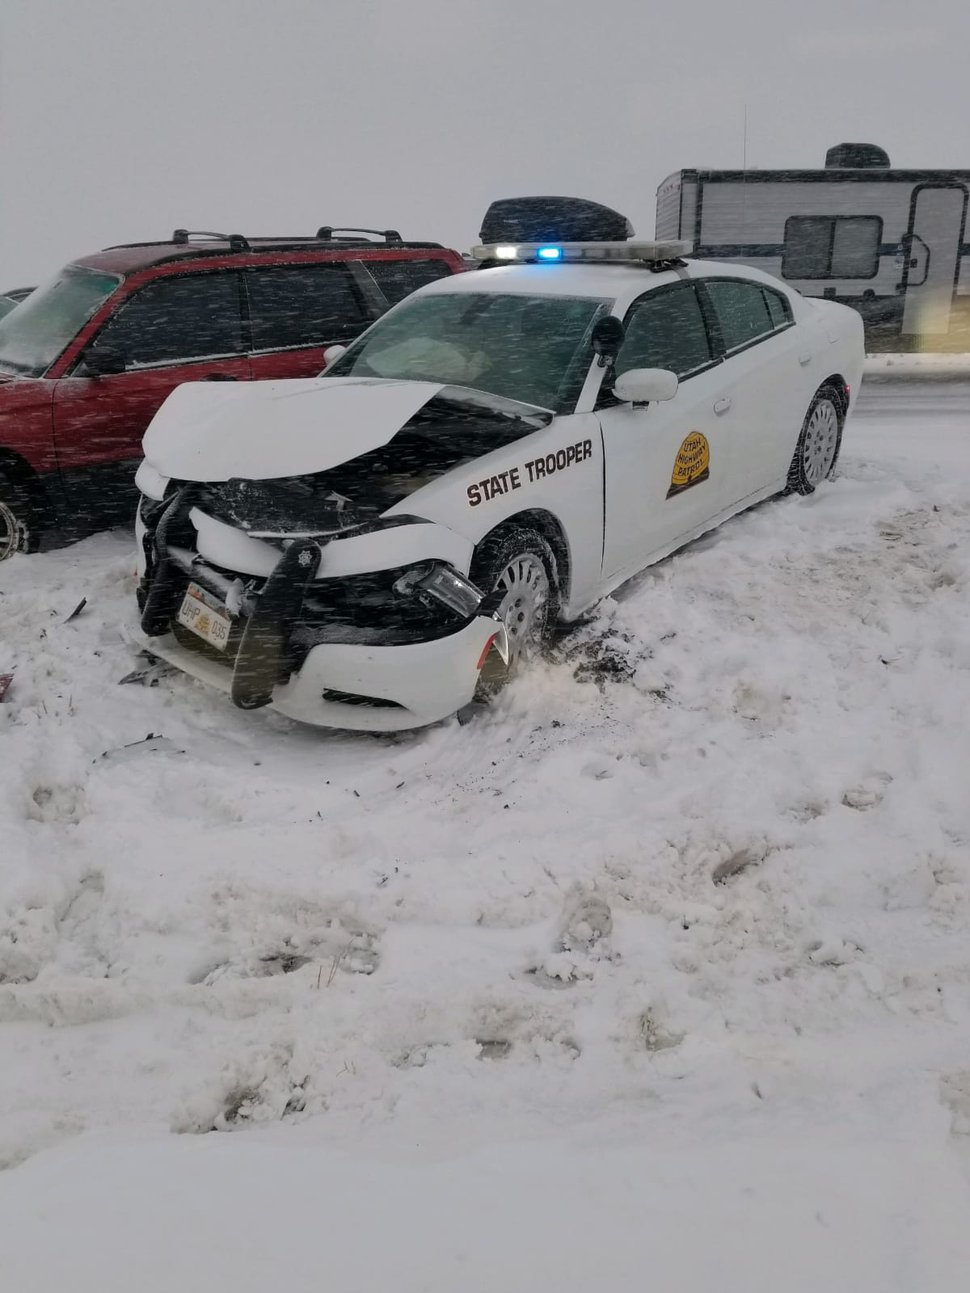 (Photo courtesy of Utah Highway Patrol) A Utah Highway Patrol car was struck head-on Friday. The trooper was trying to slow traffic near Beaver in a snow storm when an SUV collided with the patrol car. The trooper and other driver are OK.